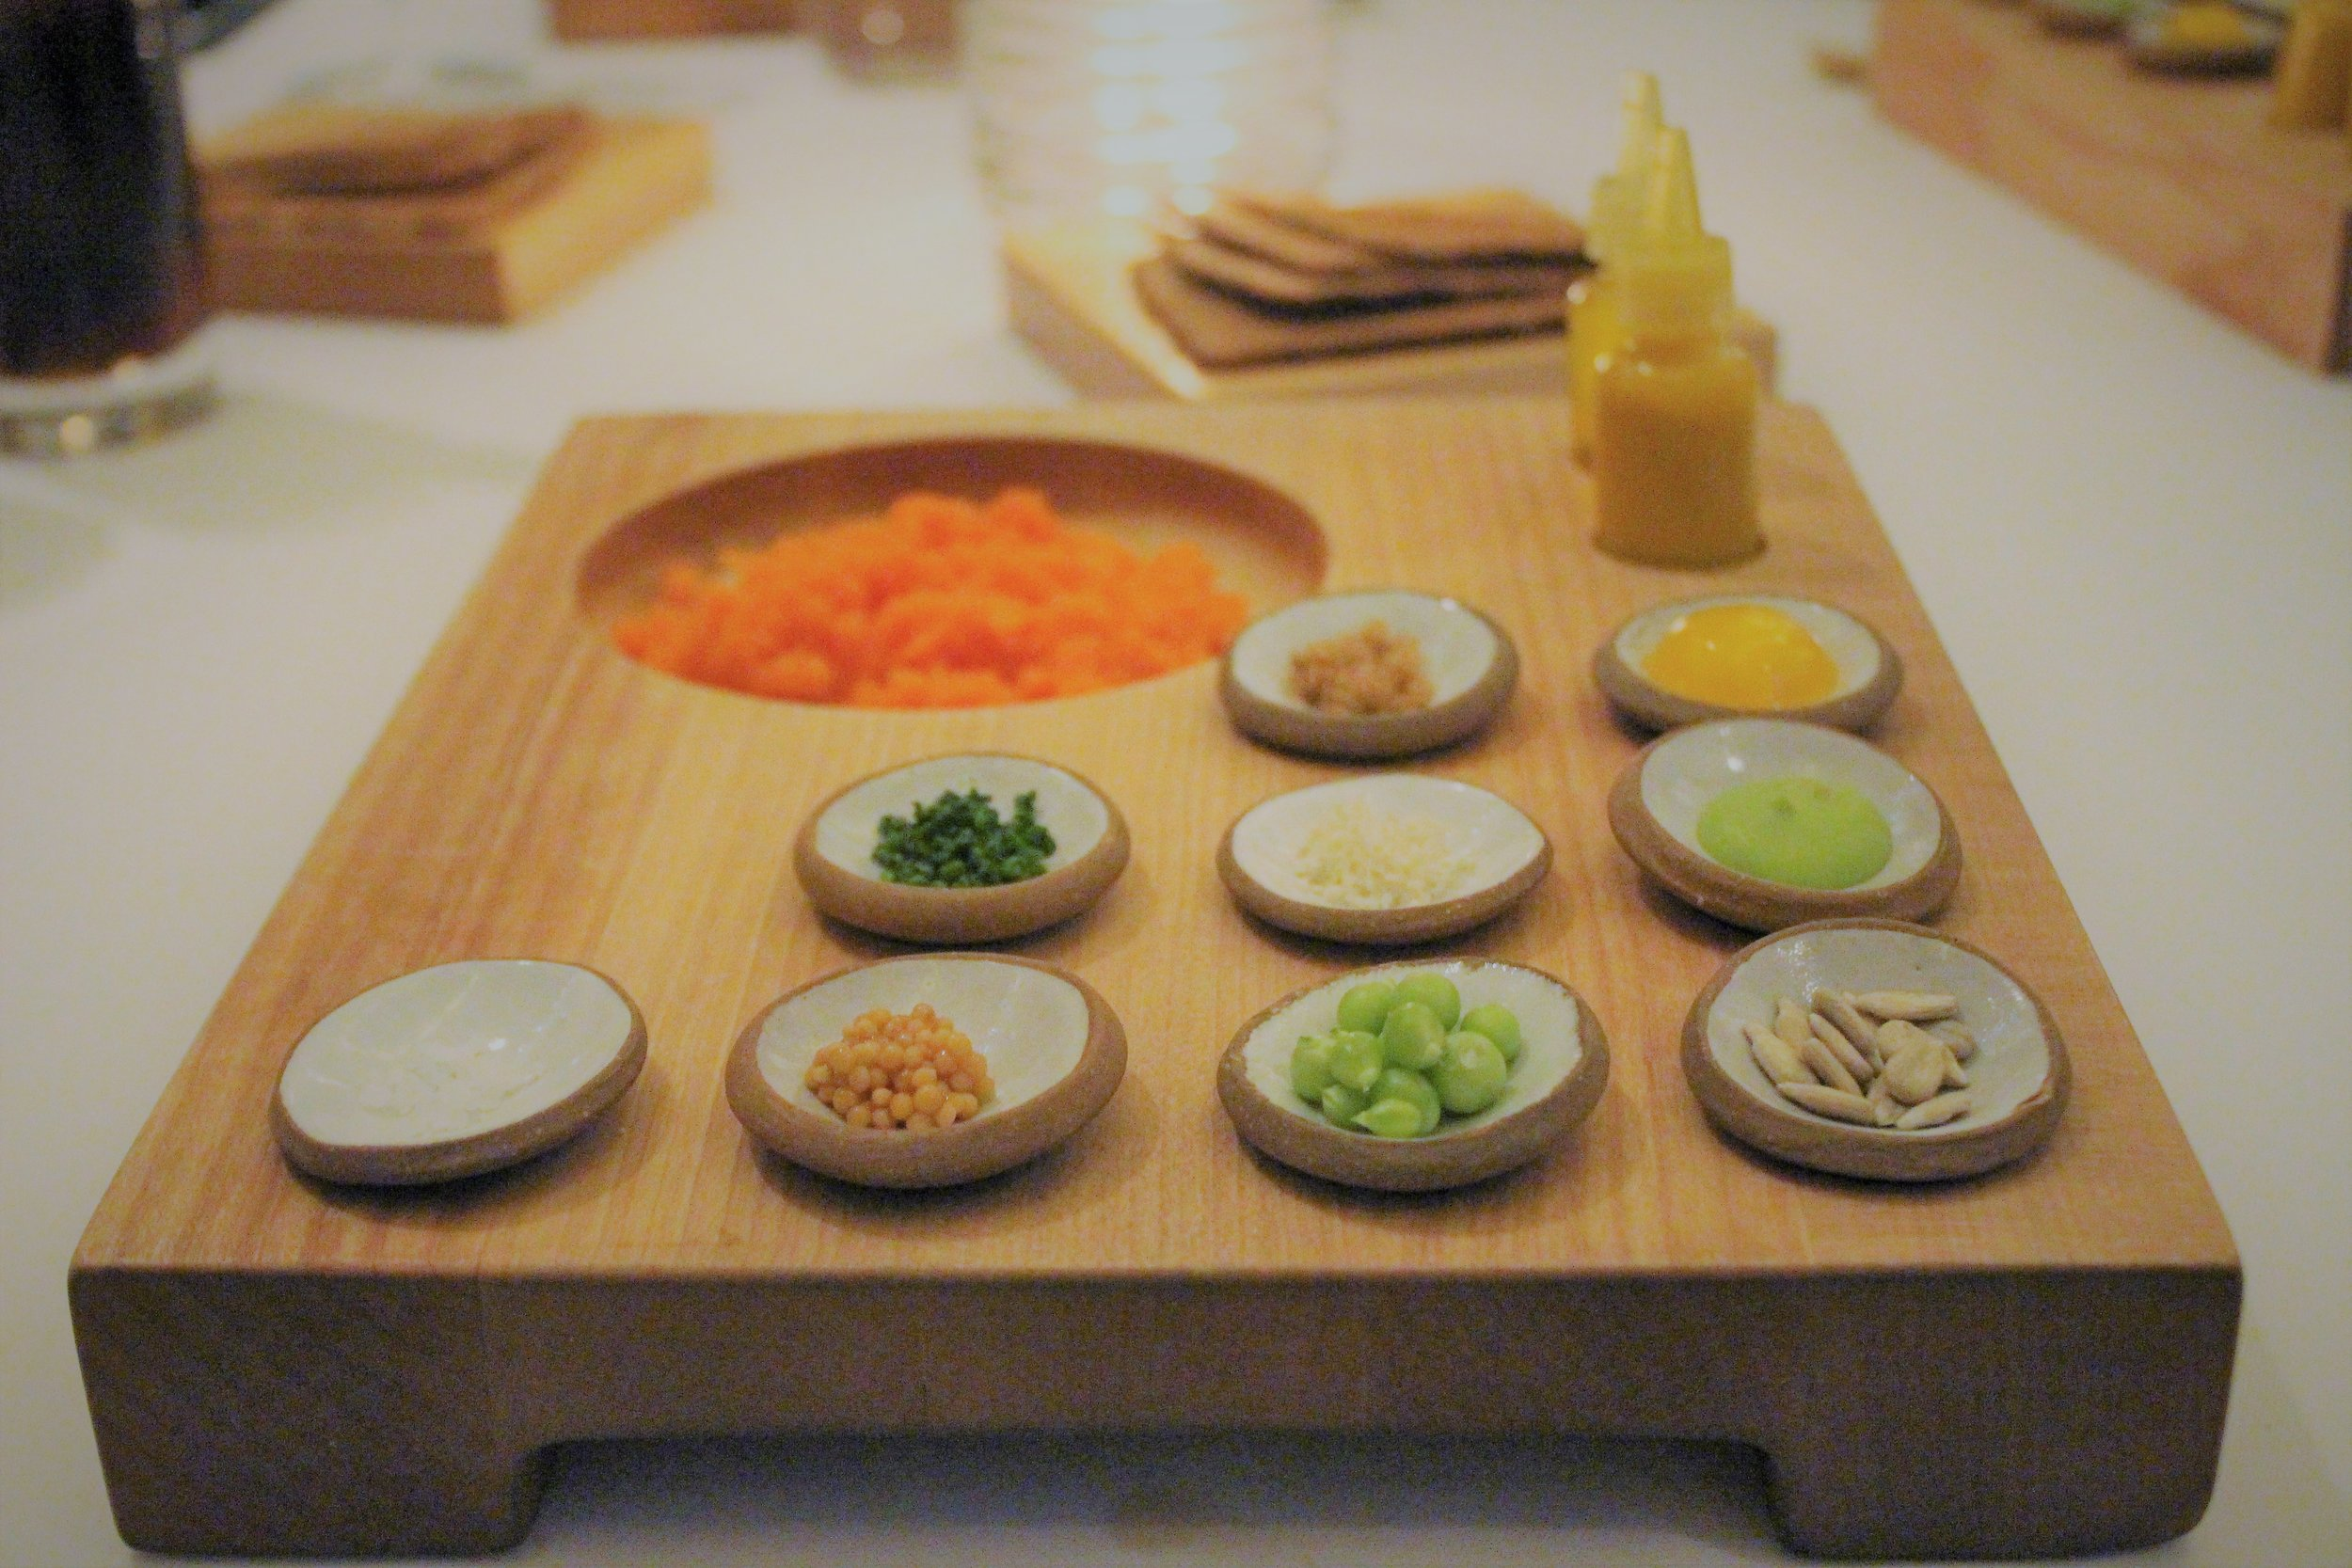 2012 Carrot Tartare with Rye Toast and Condiments at EMP in New York City